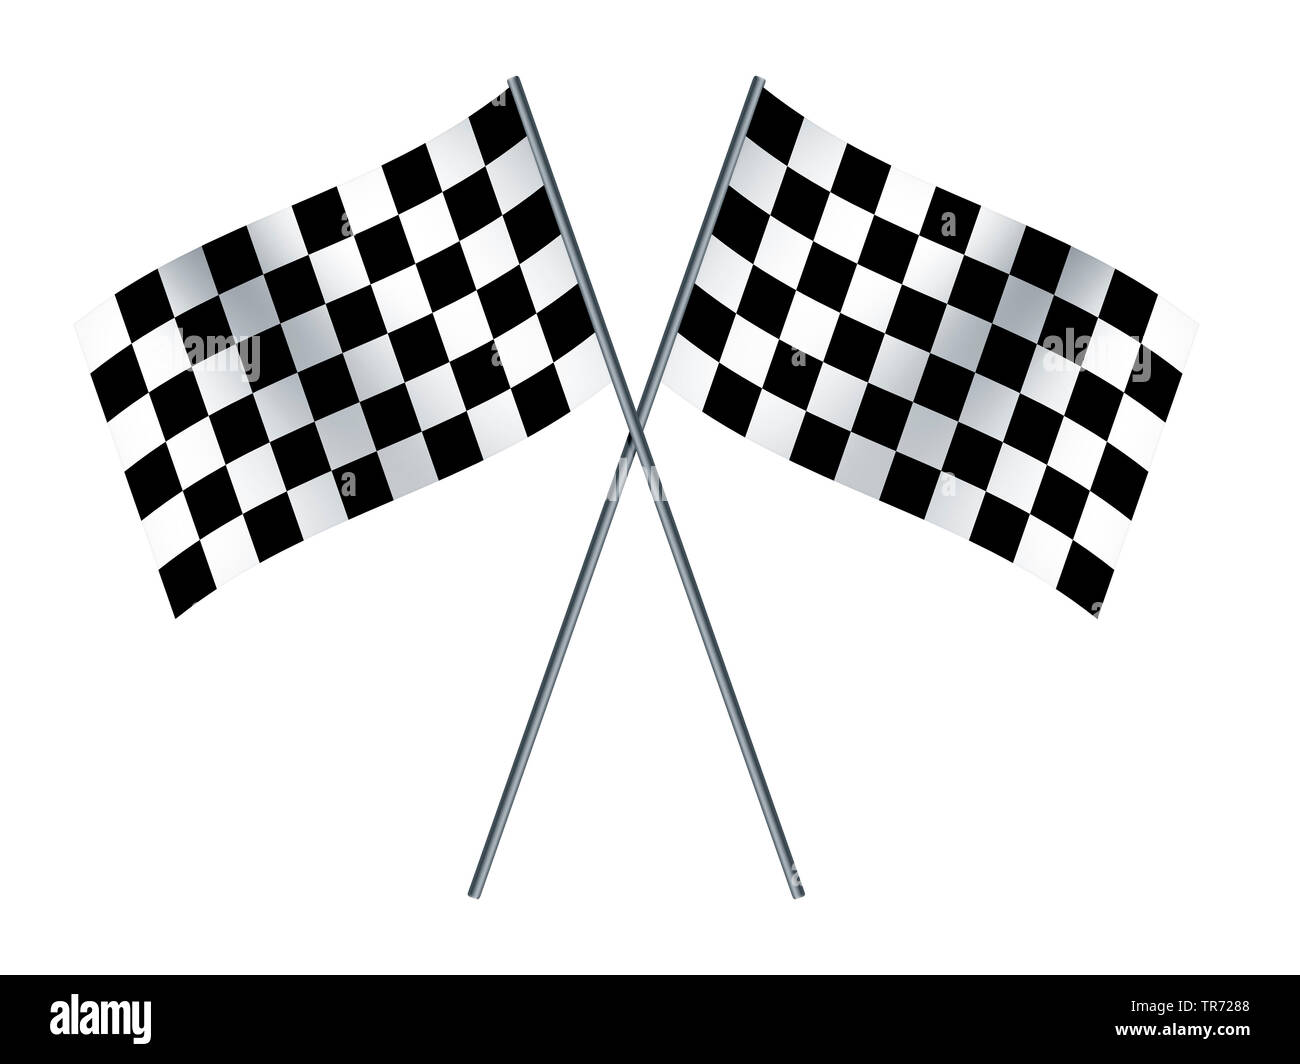 SKY BLUE and WHITE CHECK FLAG 5/' x 3/' Checkered Checked Chequered Sports Team